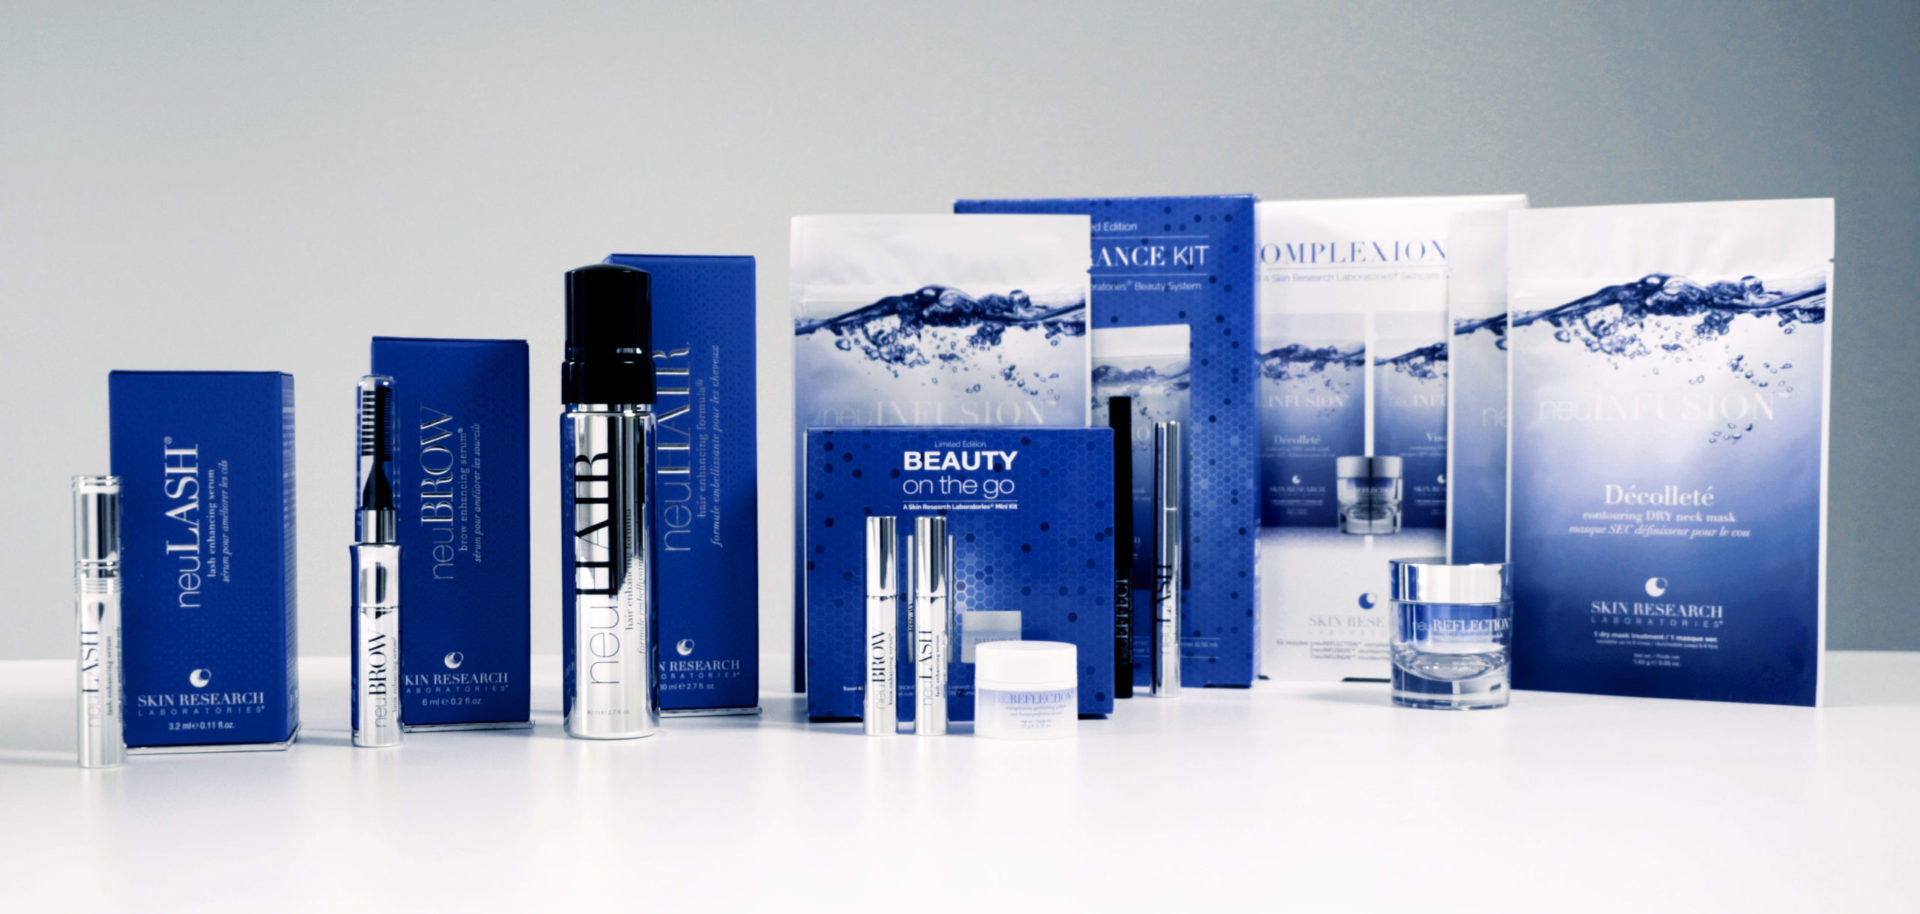 Skin Research Laboratories® Enhance Your Life Beauty Blog | Lash Serums, Brow Serums and All thing Beauty